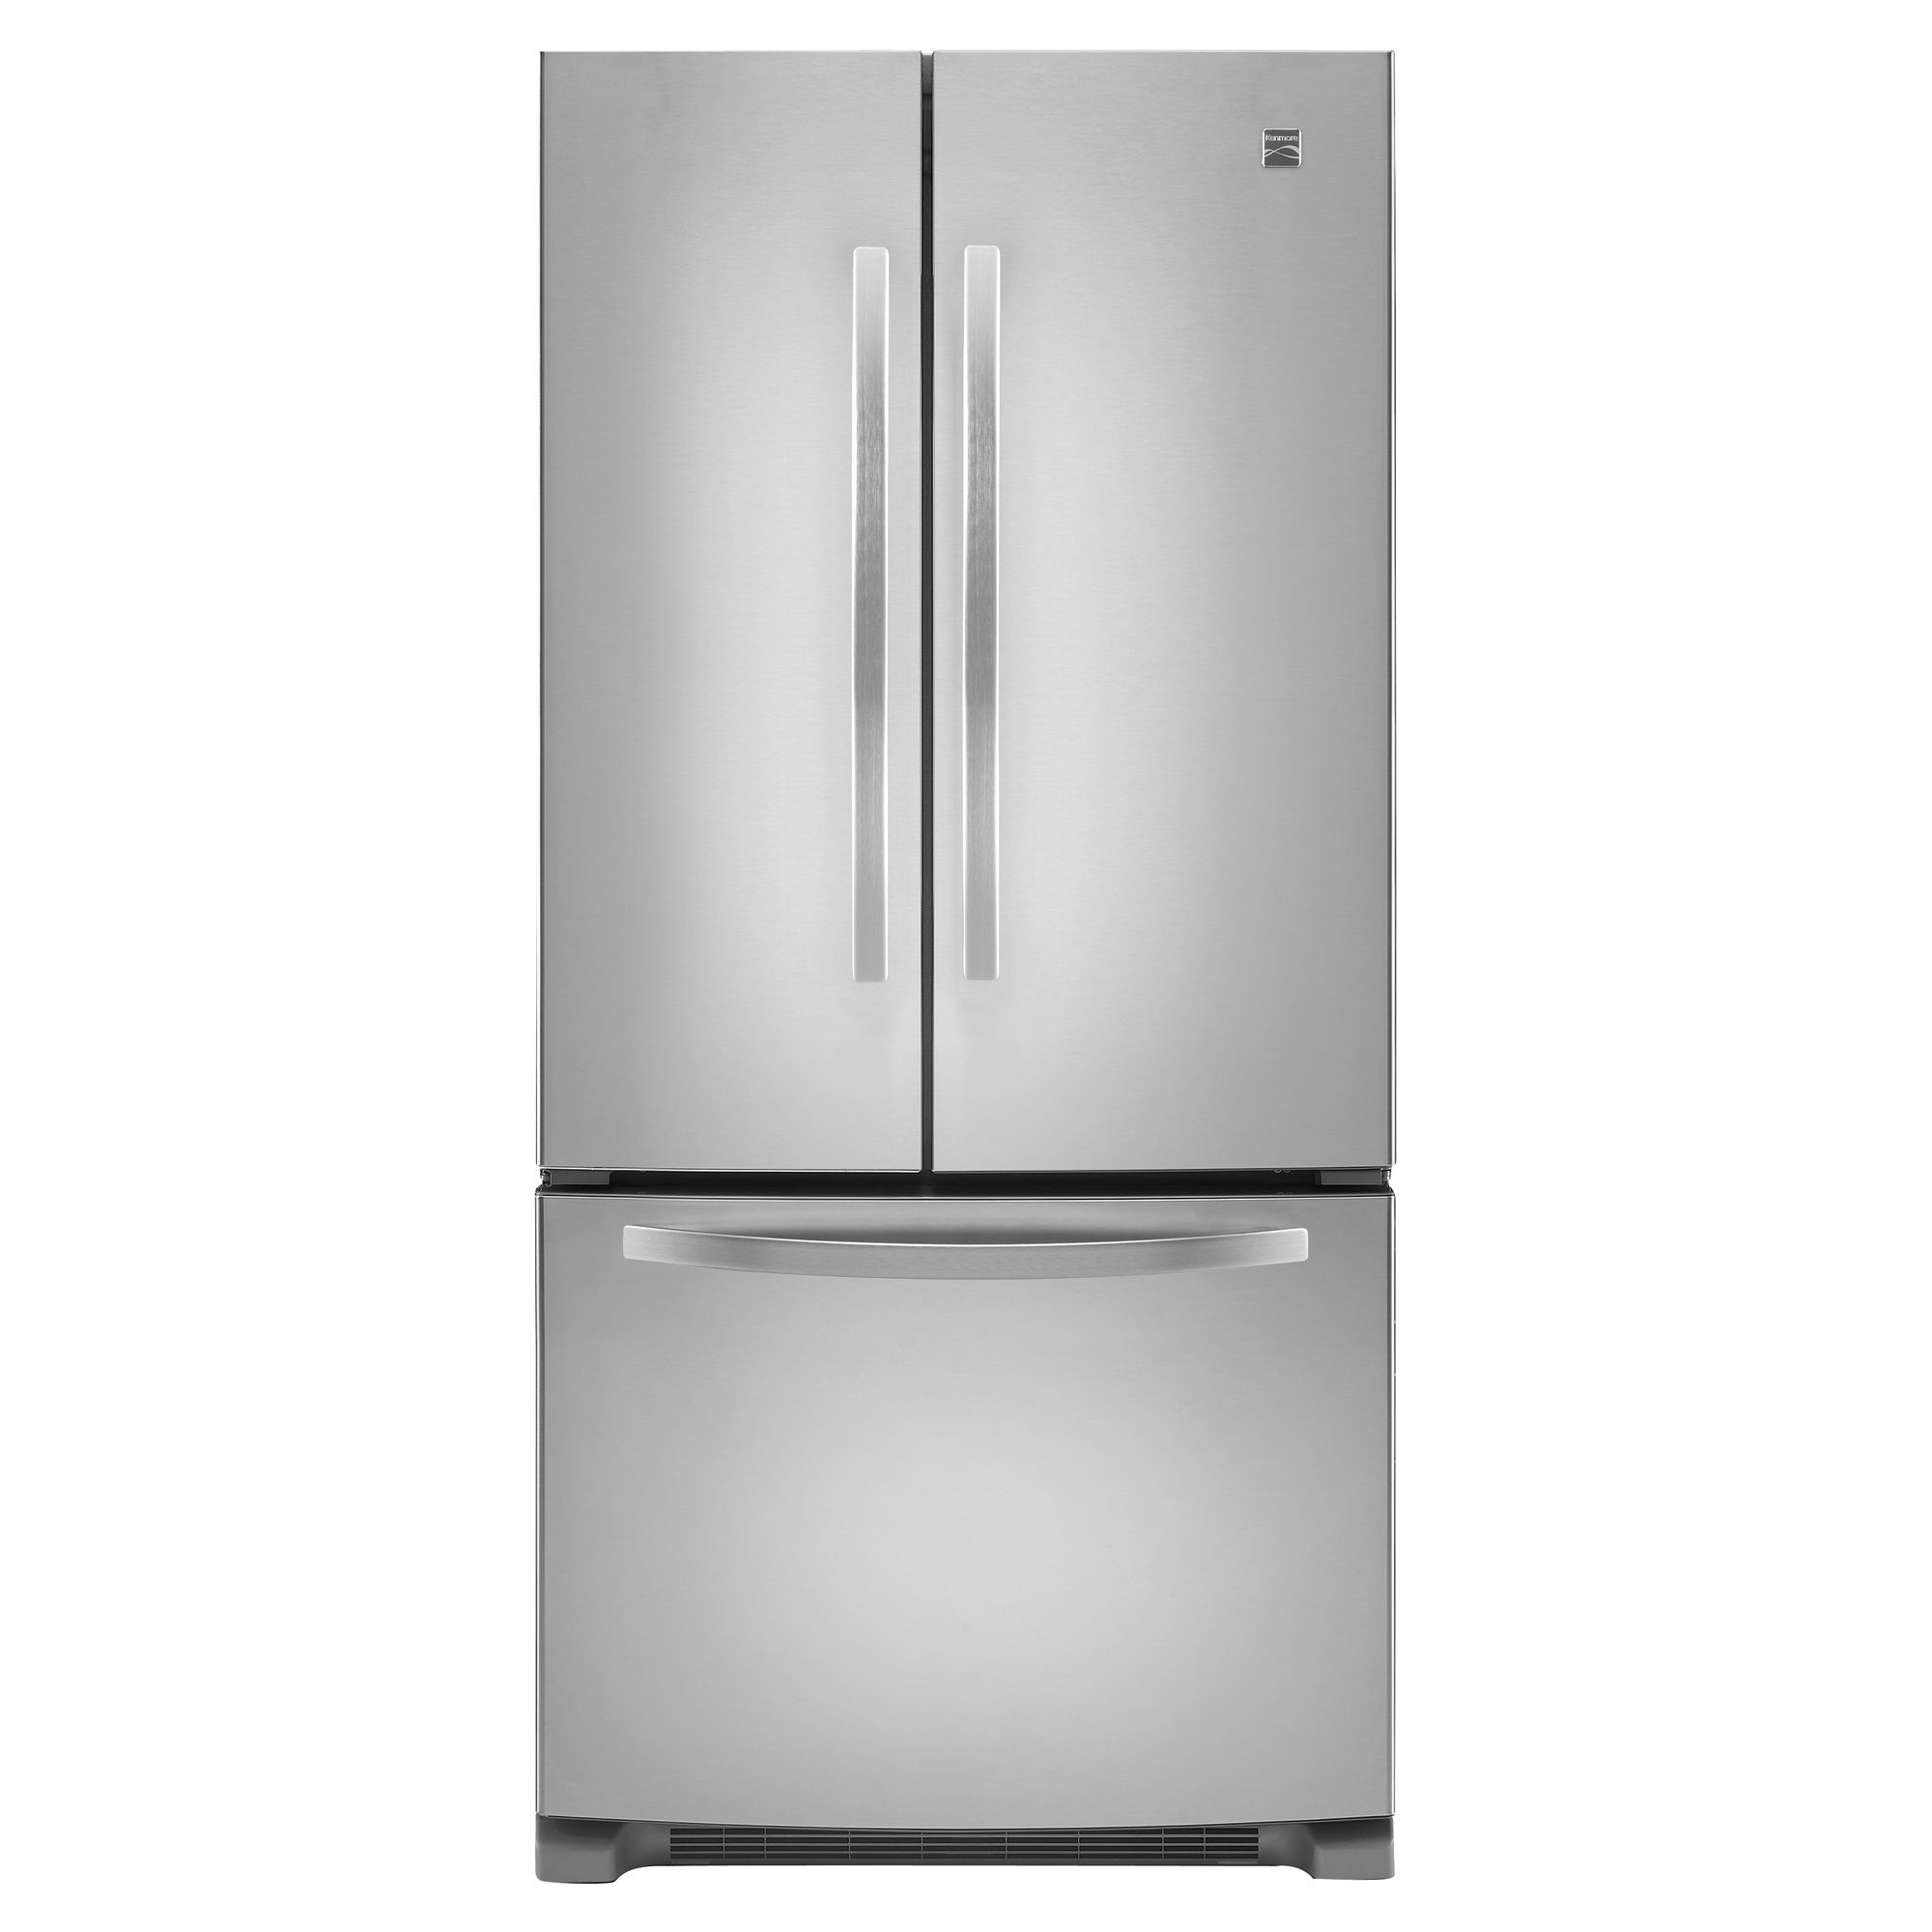 72003-22-1-cu-ft-French-Door-Bottom-Freezer-Refrigerator-w-Internal-Dispenser-Stainless-Steel